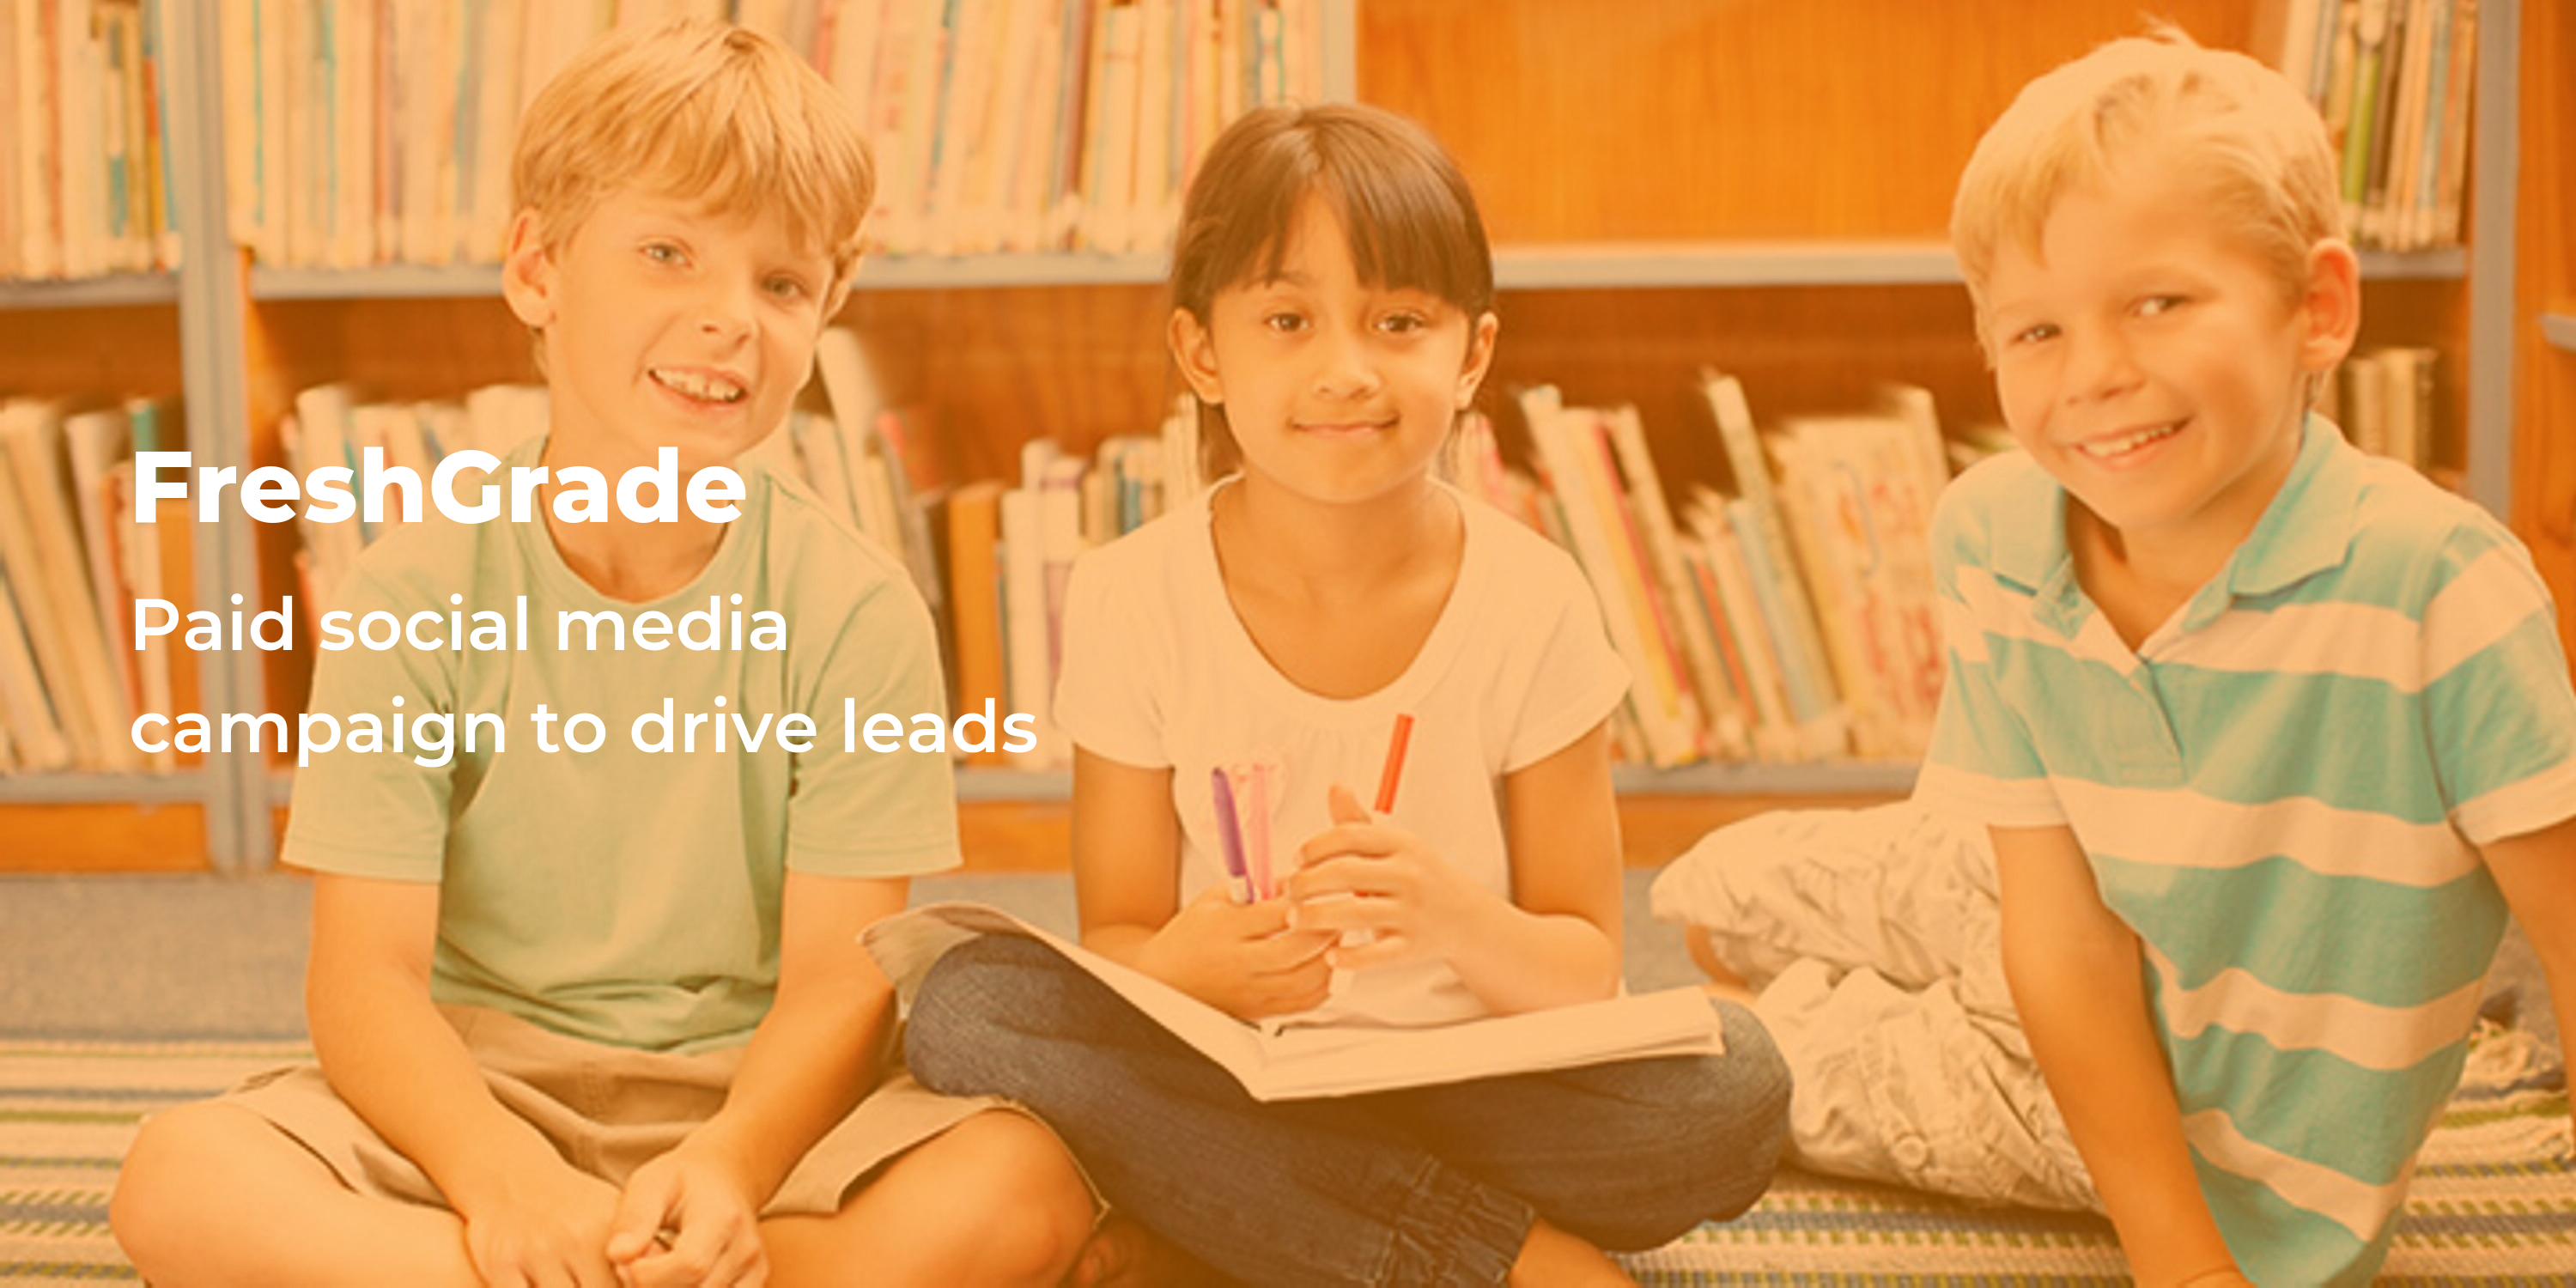 A paid social media campaign for edtech company FreshGrade drives leads in key sales states